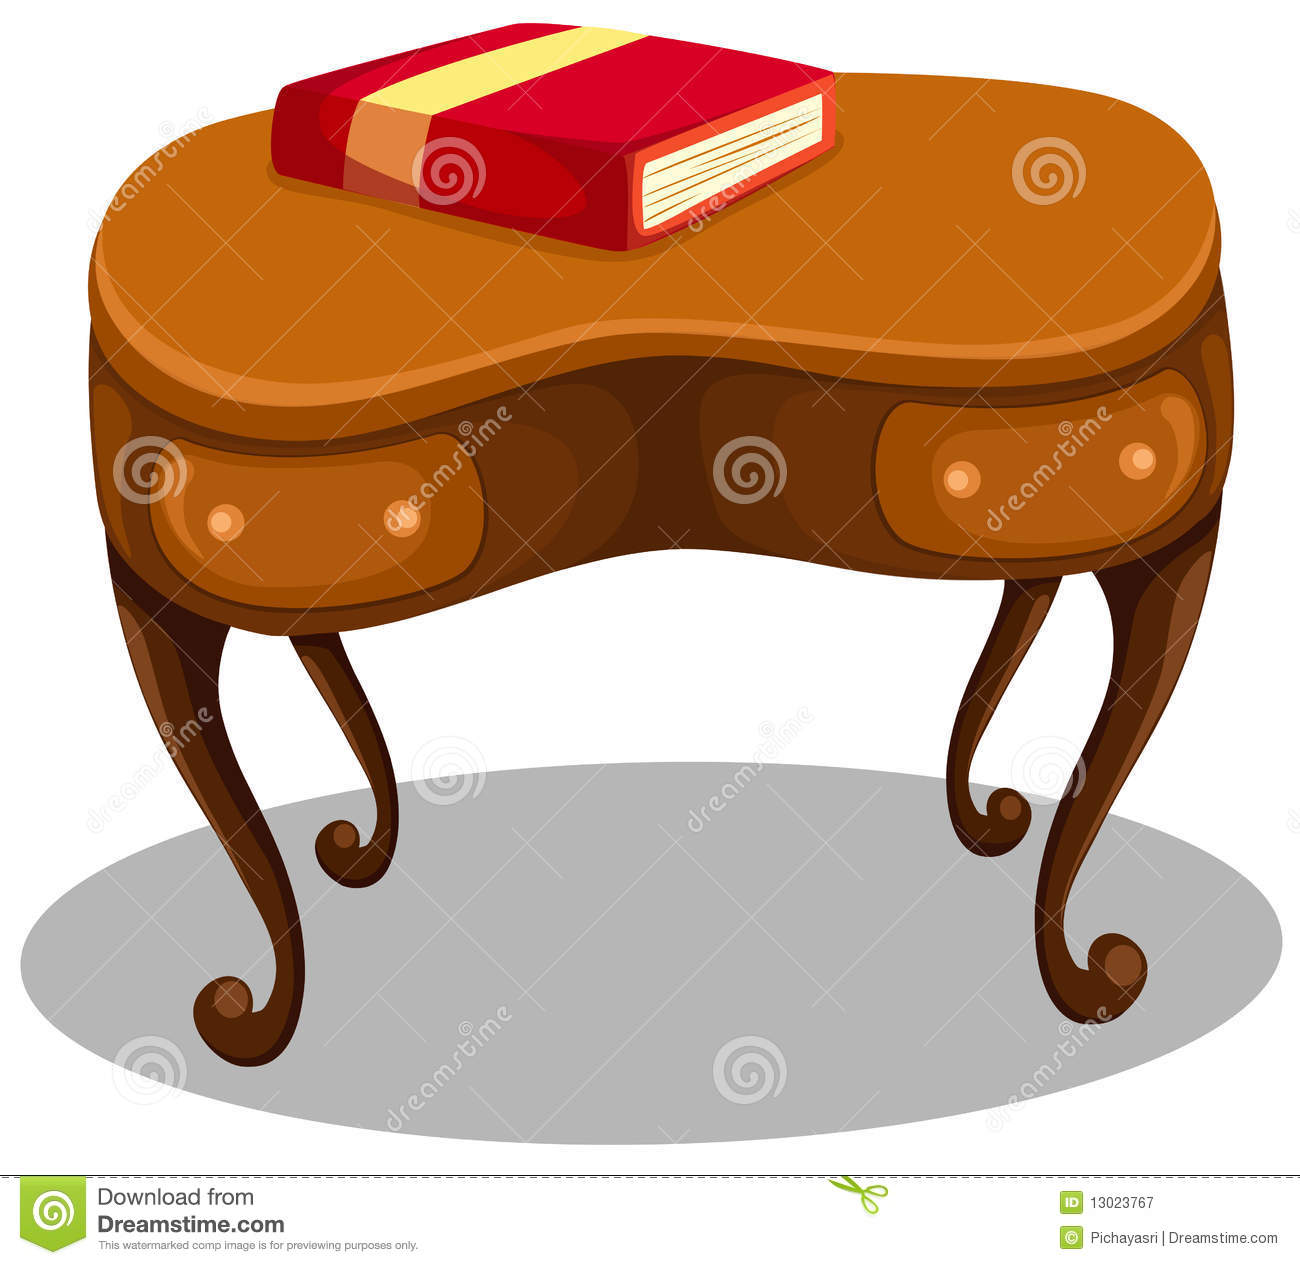 Red Book Desk Royalty Free Stock graphy Image